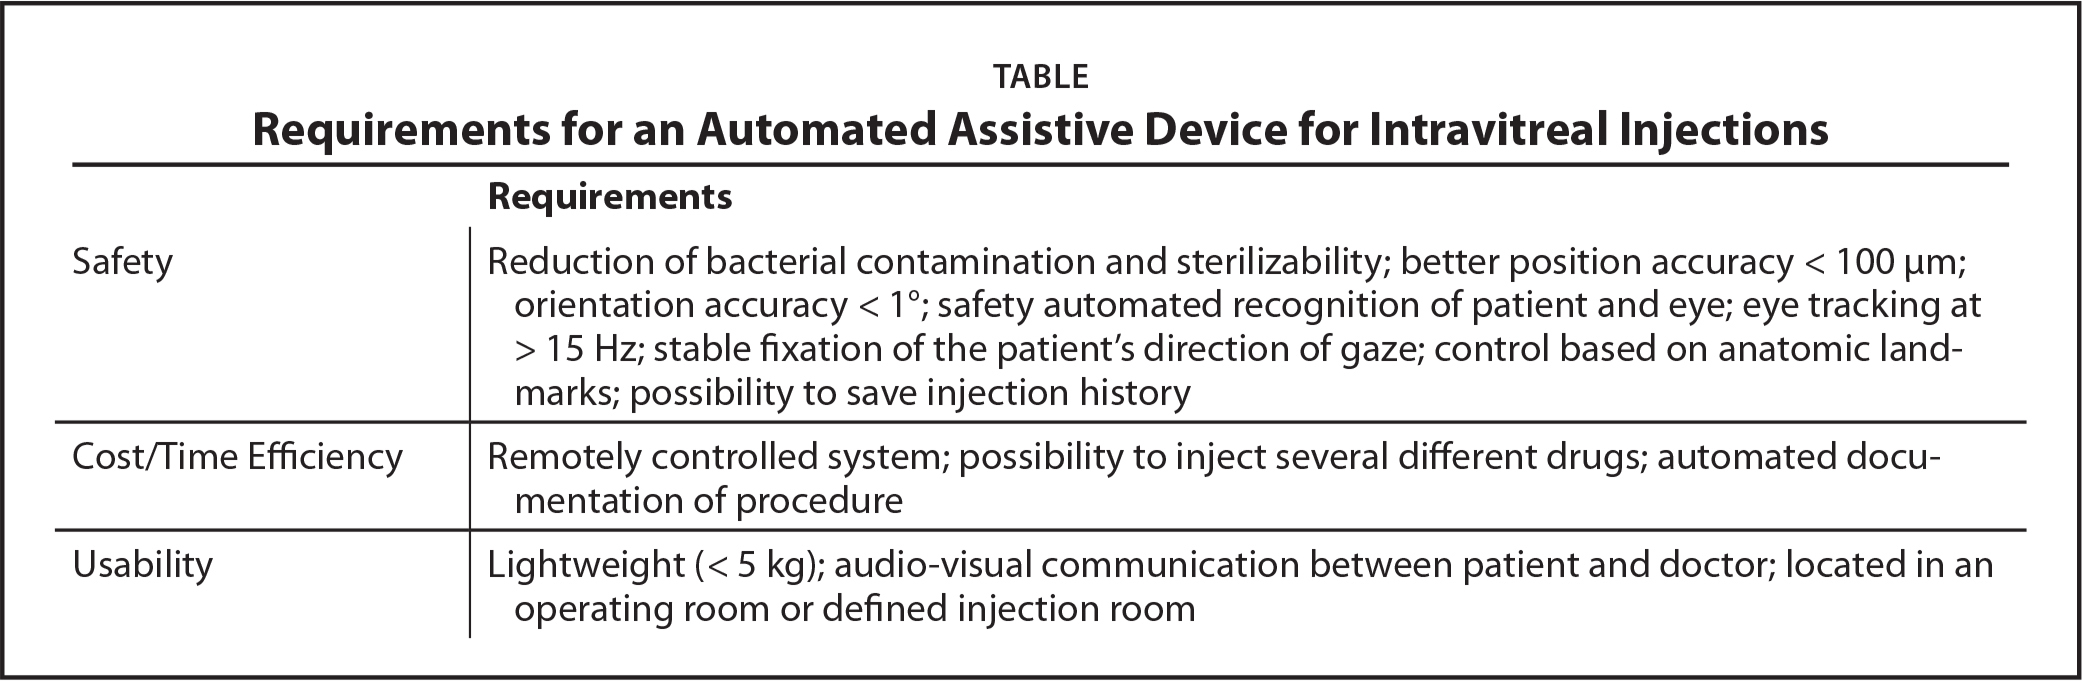 Requirements for an Automated Assistive Device for Intravitreal Injections